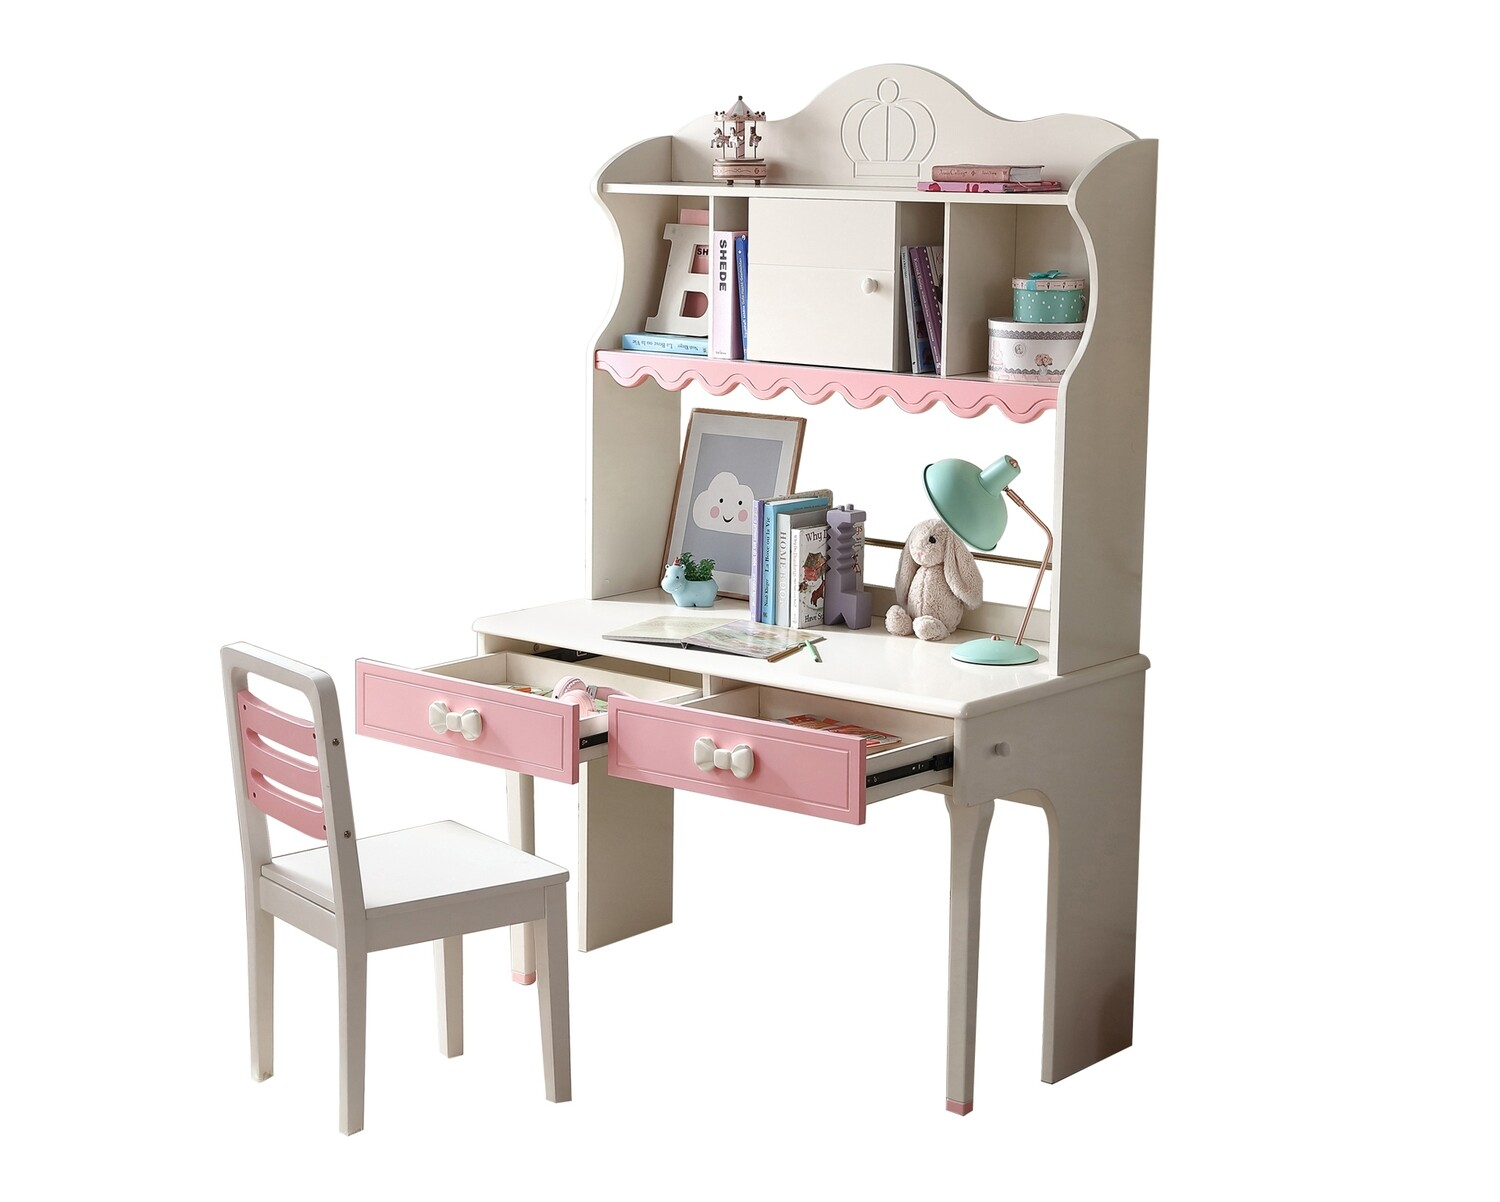 Ofix Milana Bedroom Bookcase Desk Set (Pink+White) (Chair not included)